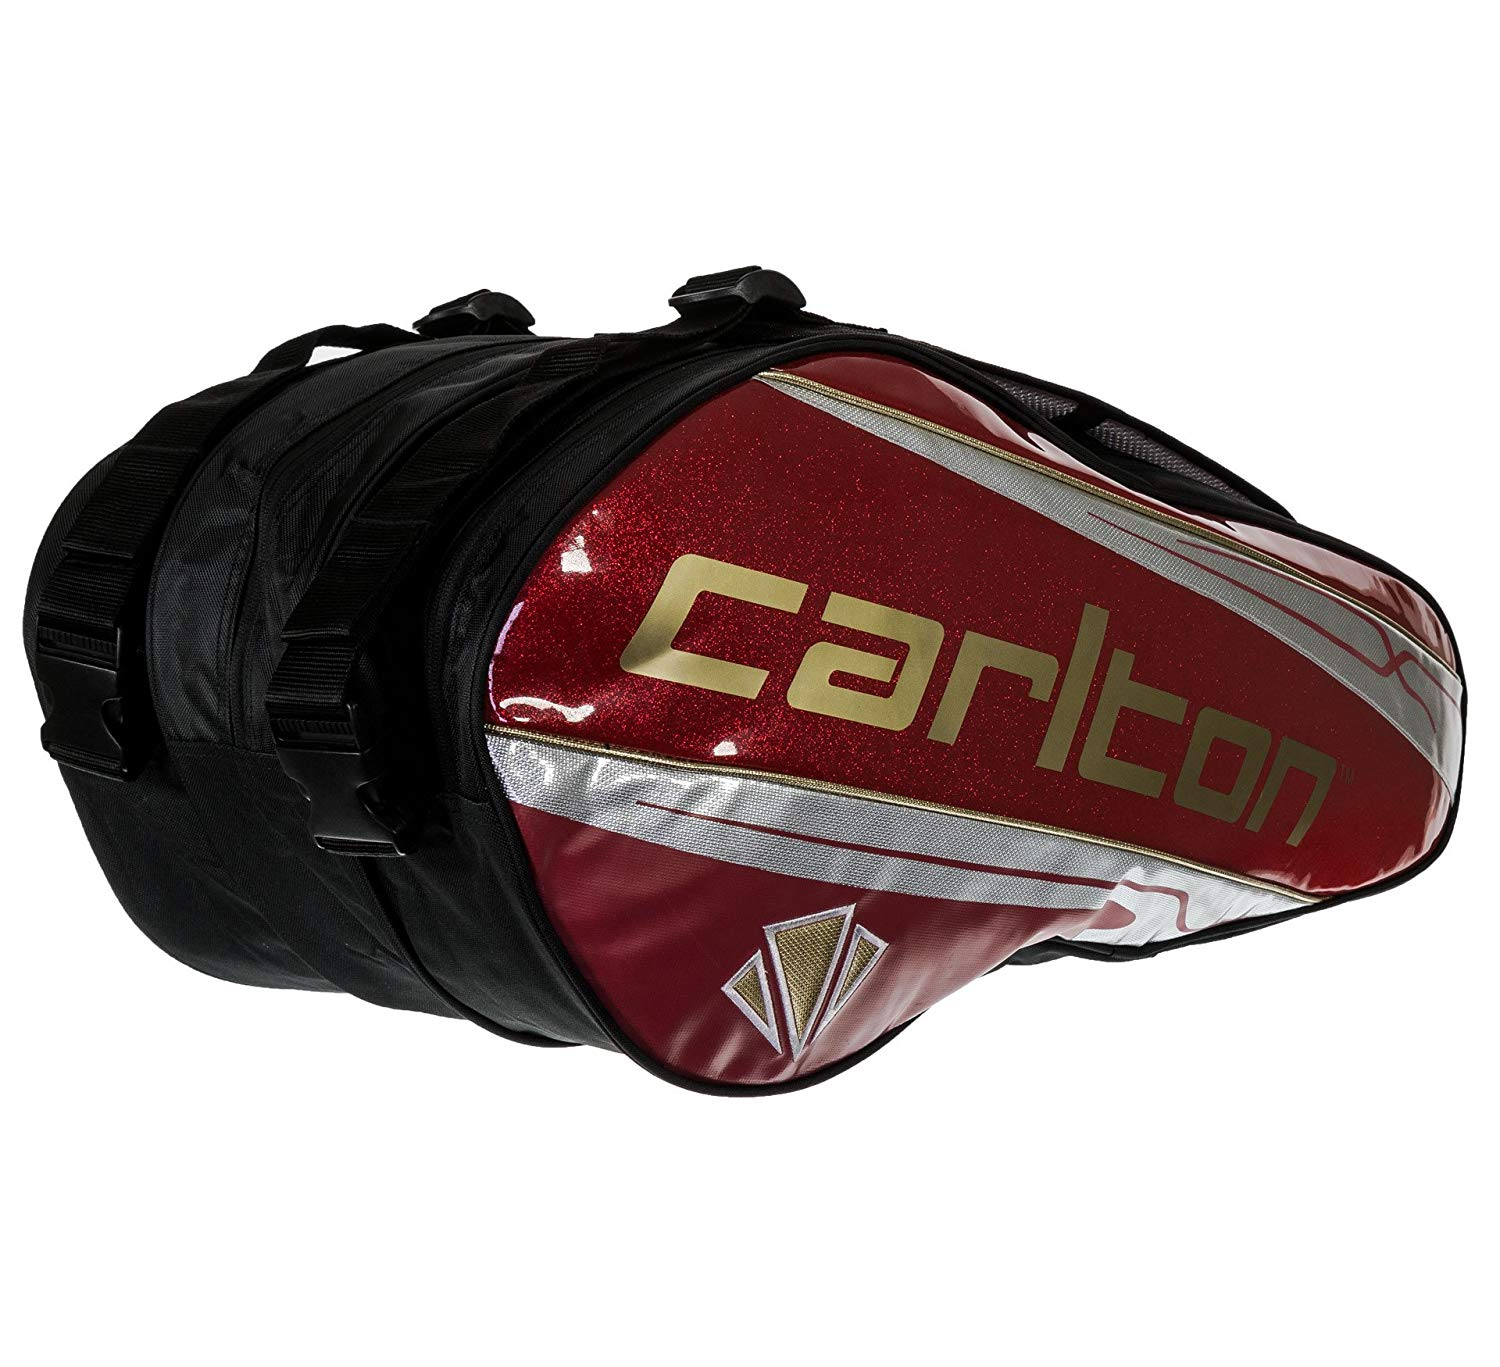 Carlton Racketbag Kinesis Tour 3 red